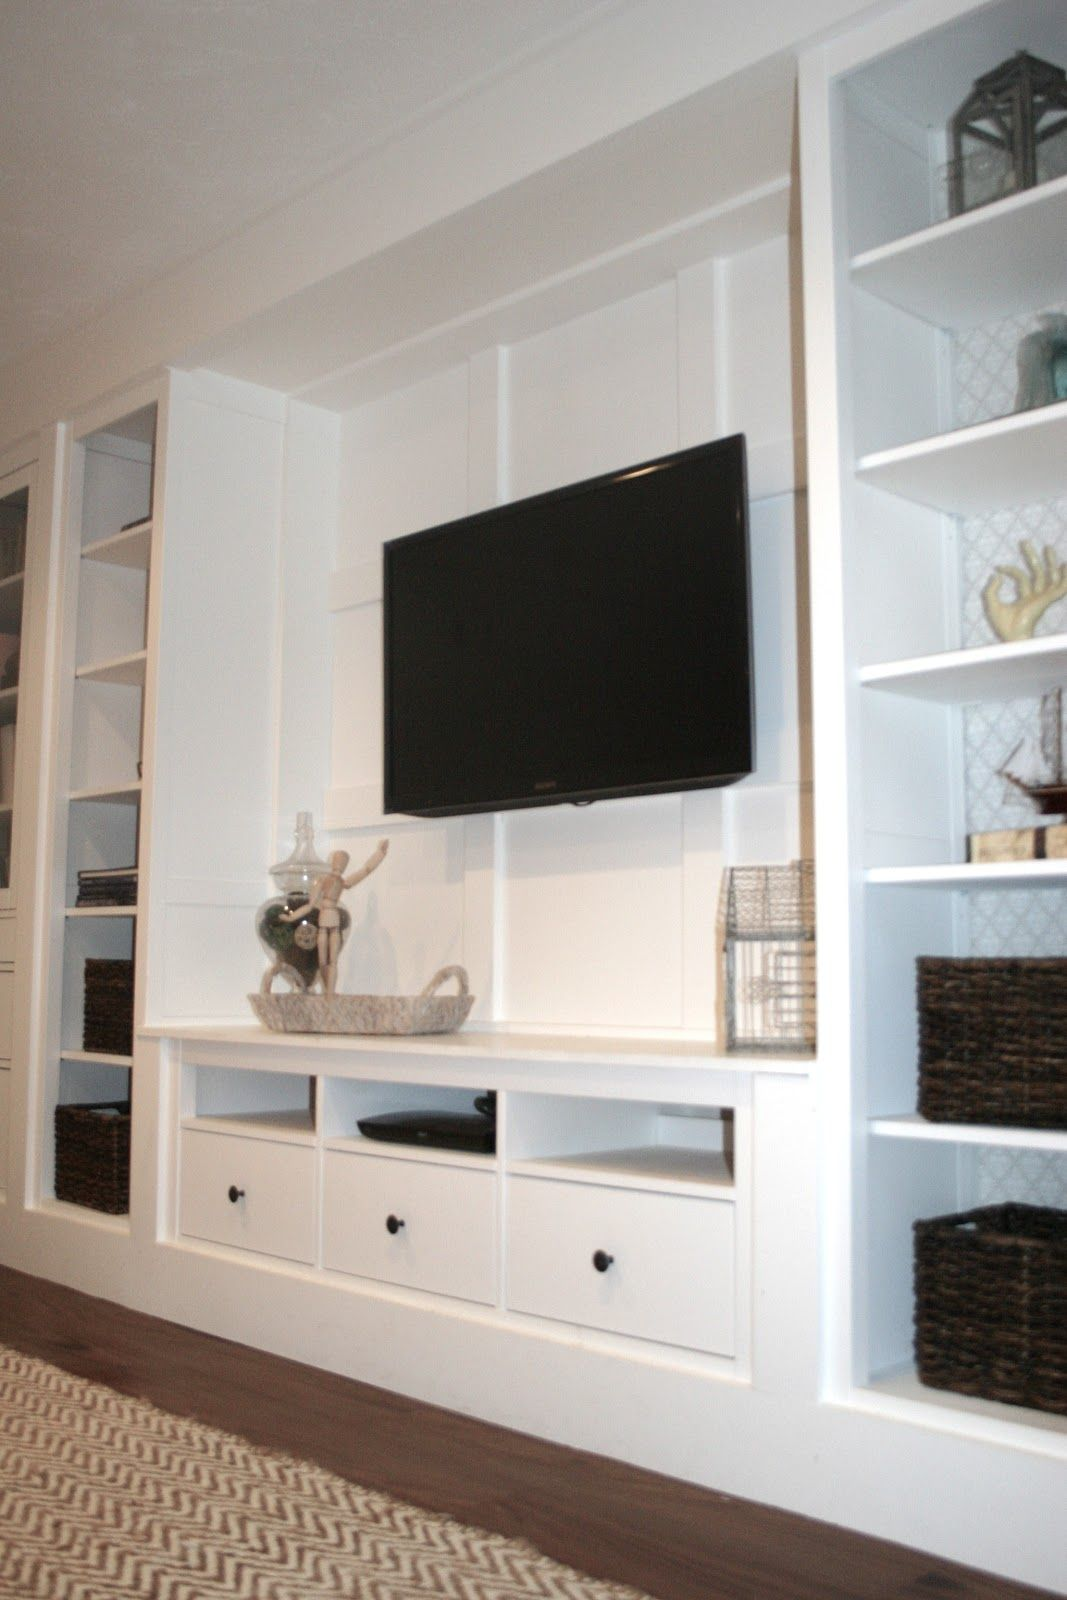 Wall Tv Unit Design Tv Unit: Homework, Countertop And Nook